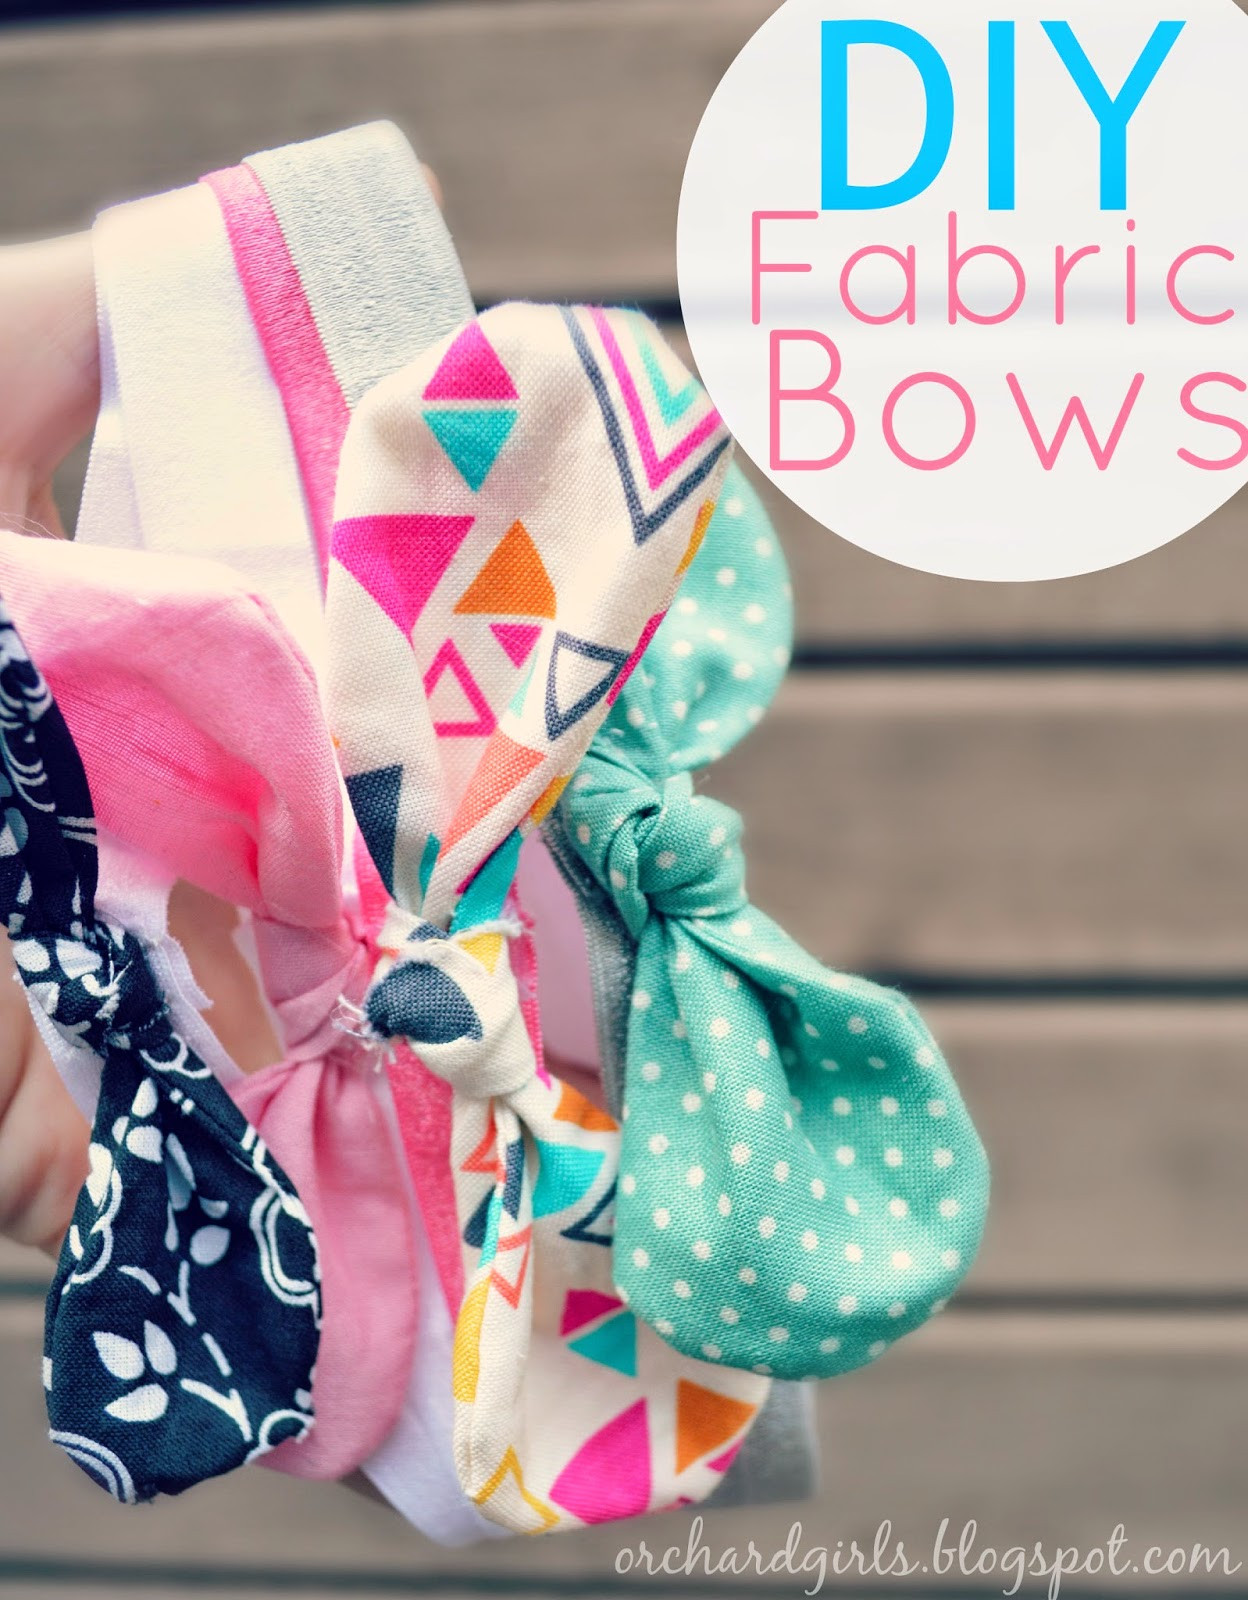 Best ideas about DIY Baby Bow Headband . Save or Pin Orchard Girls DIY Fabric Bows and Headbands Now.